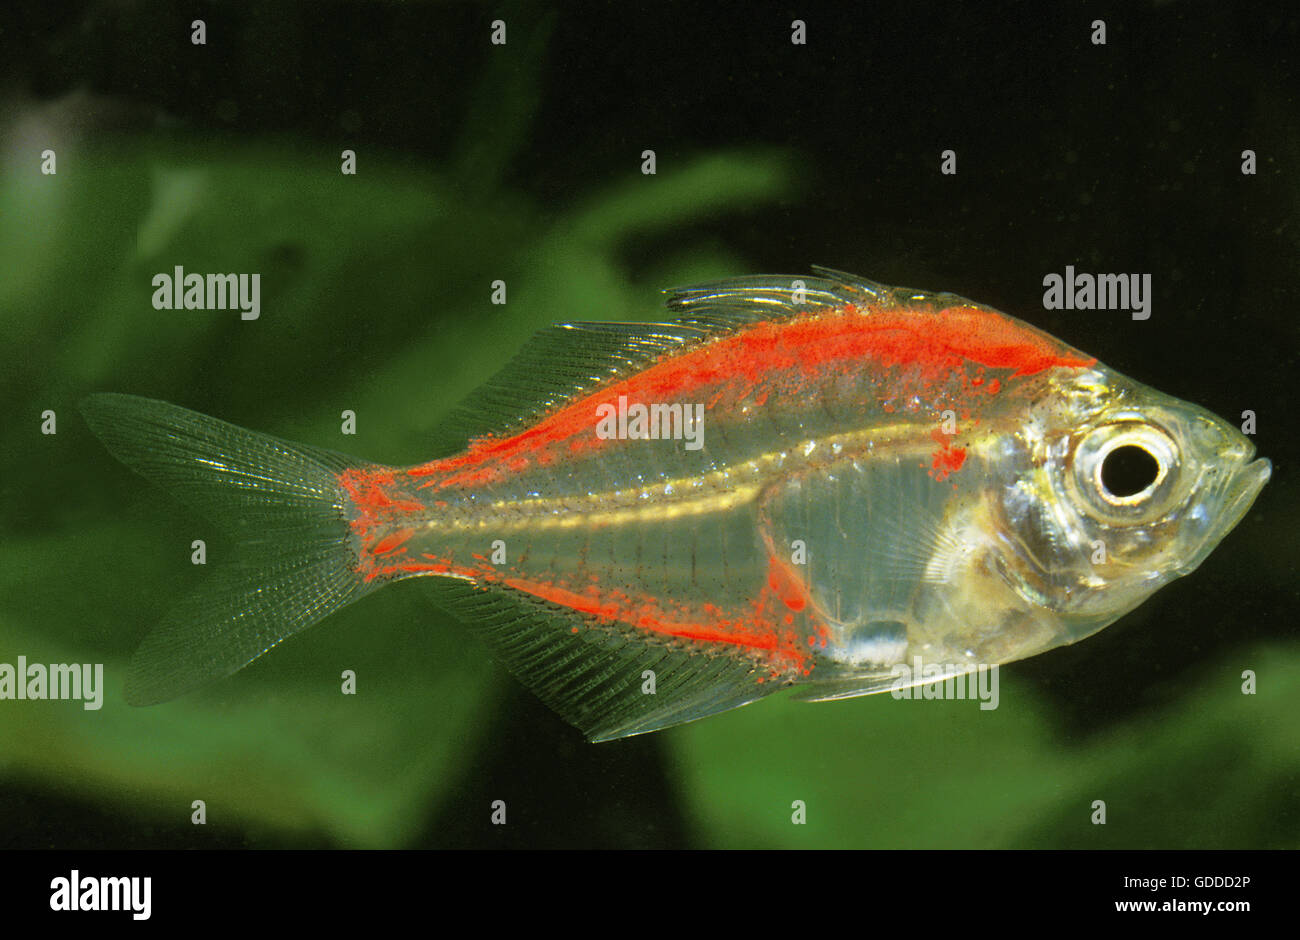 Glassfish, chanda ranga color, Adult Stock Photo: 111548382 - Alamy